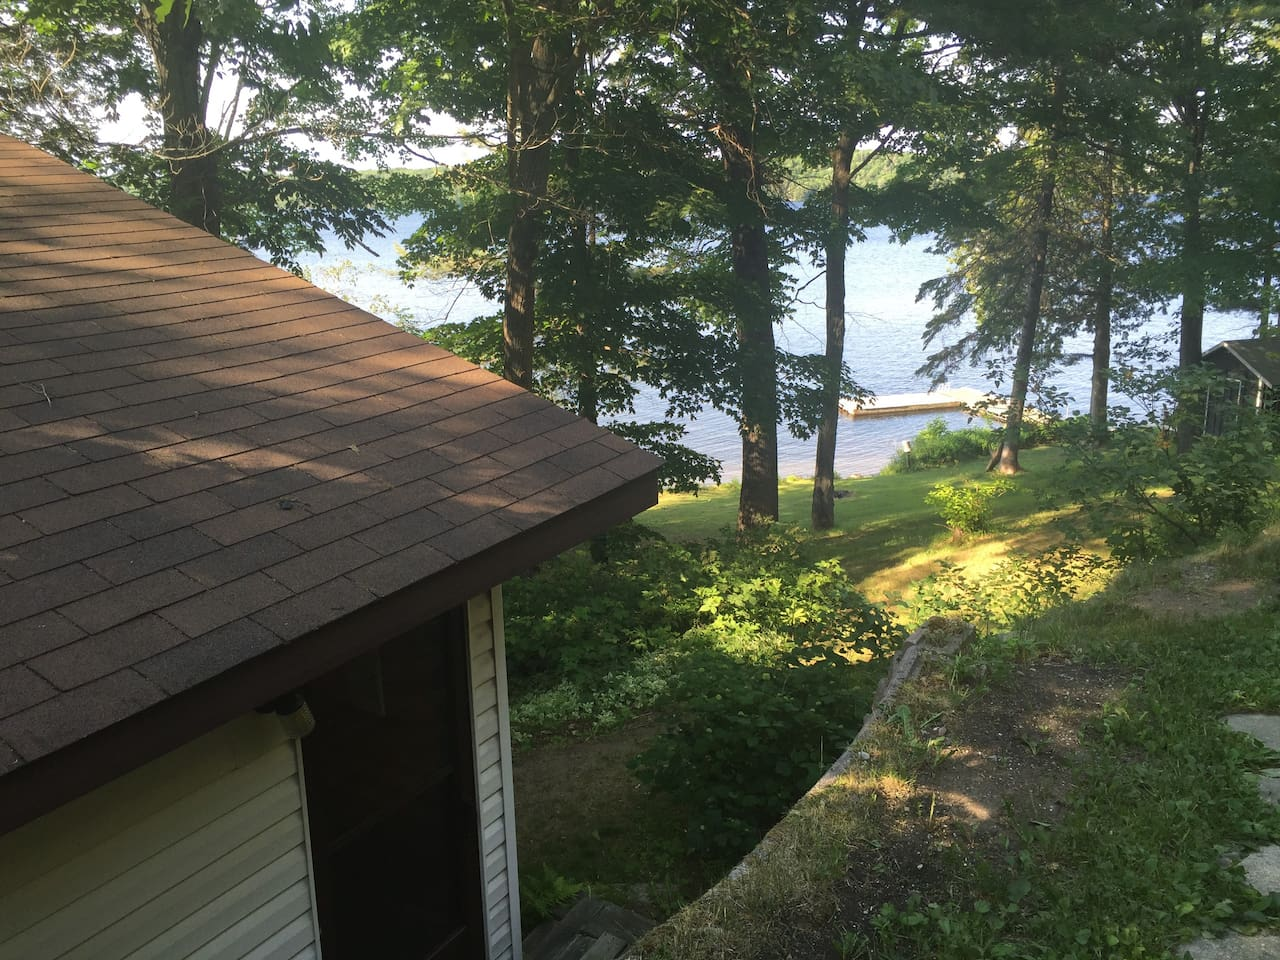 Here is a view of your cabin in the foreground and our shared dock you can fish or swim from.